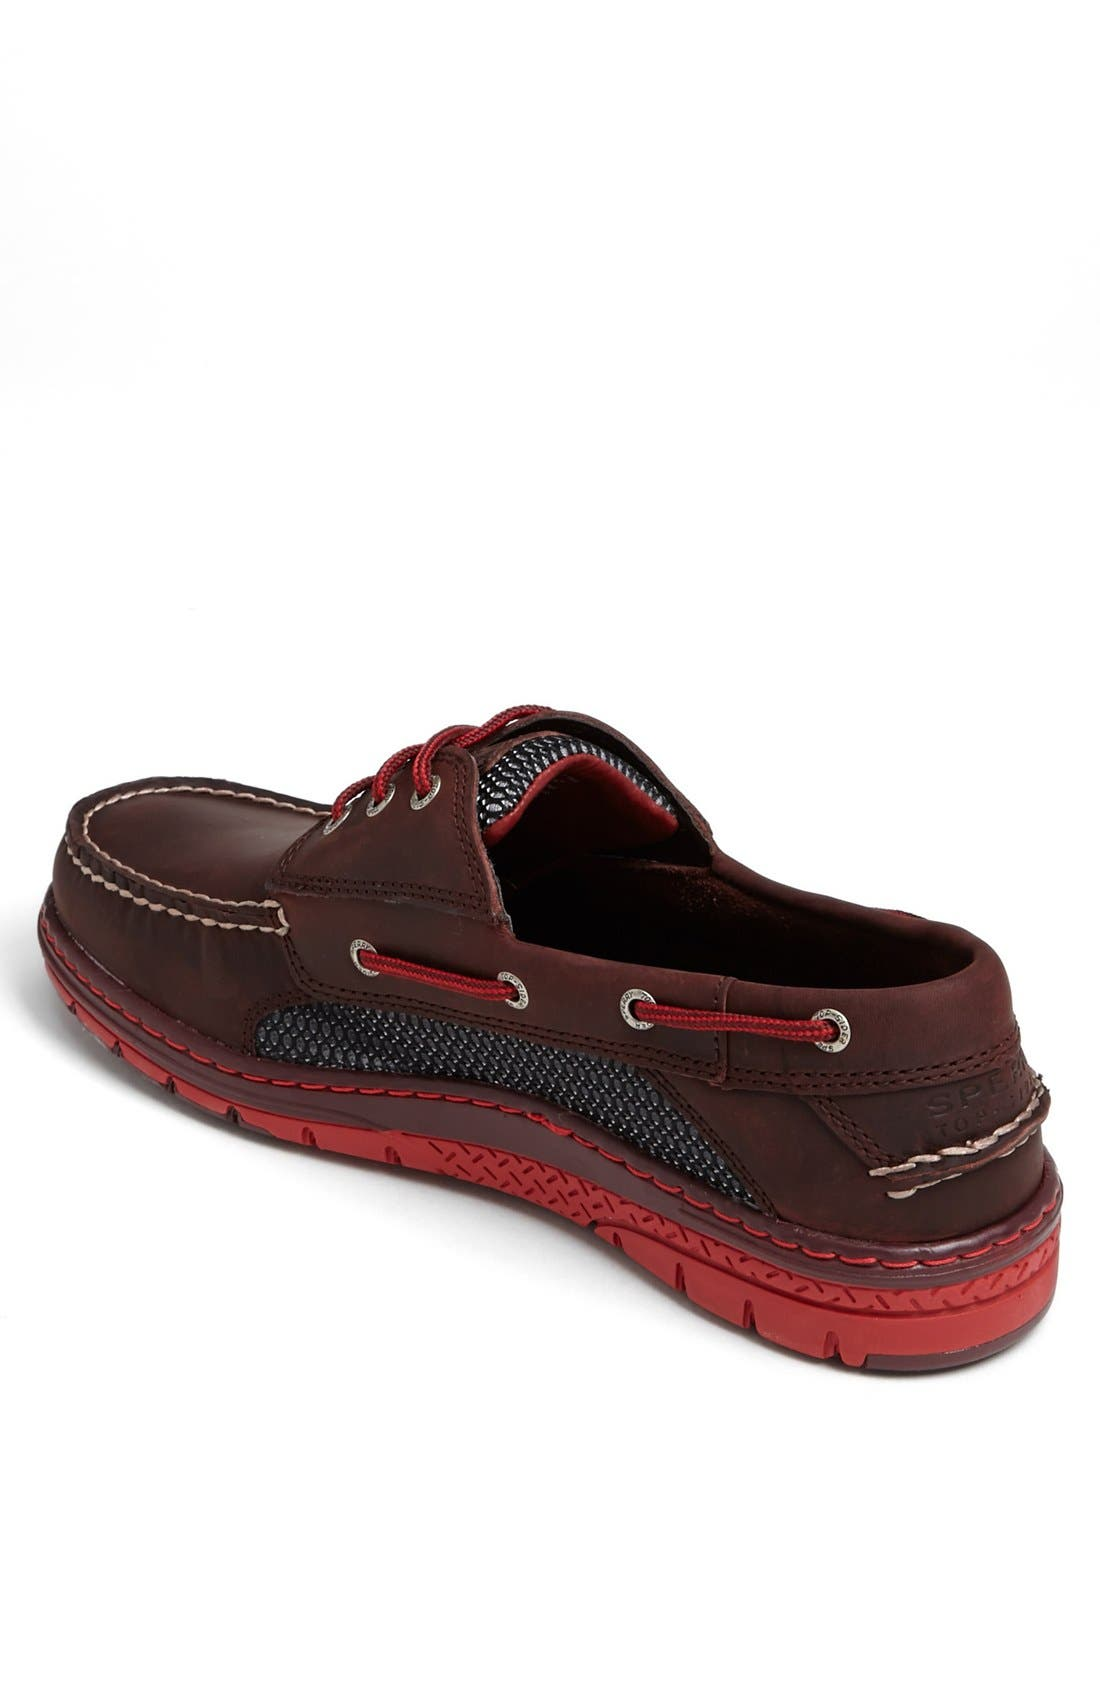 'Billfish Ultralite' Boat Shoe,                             Alternate thumbnail 40, color,